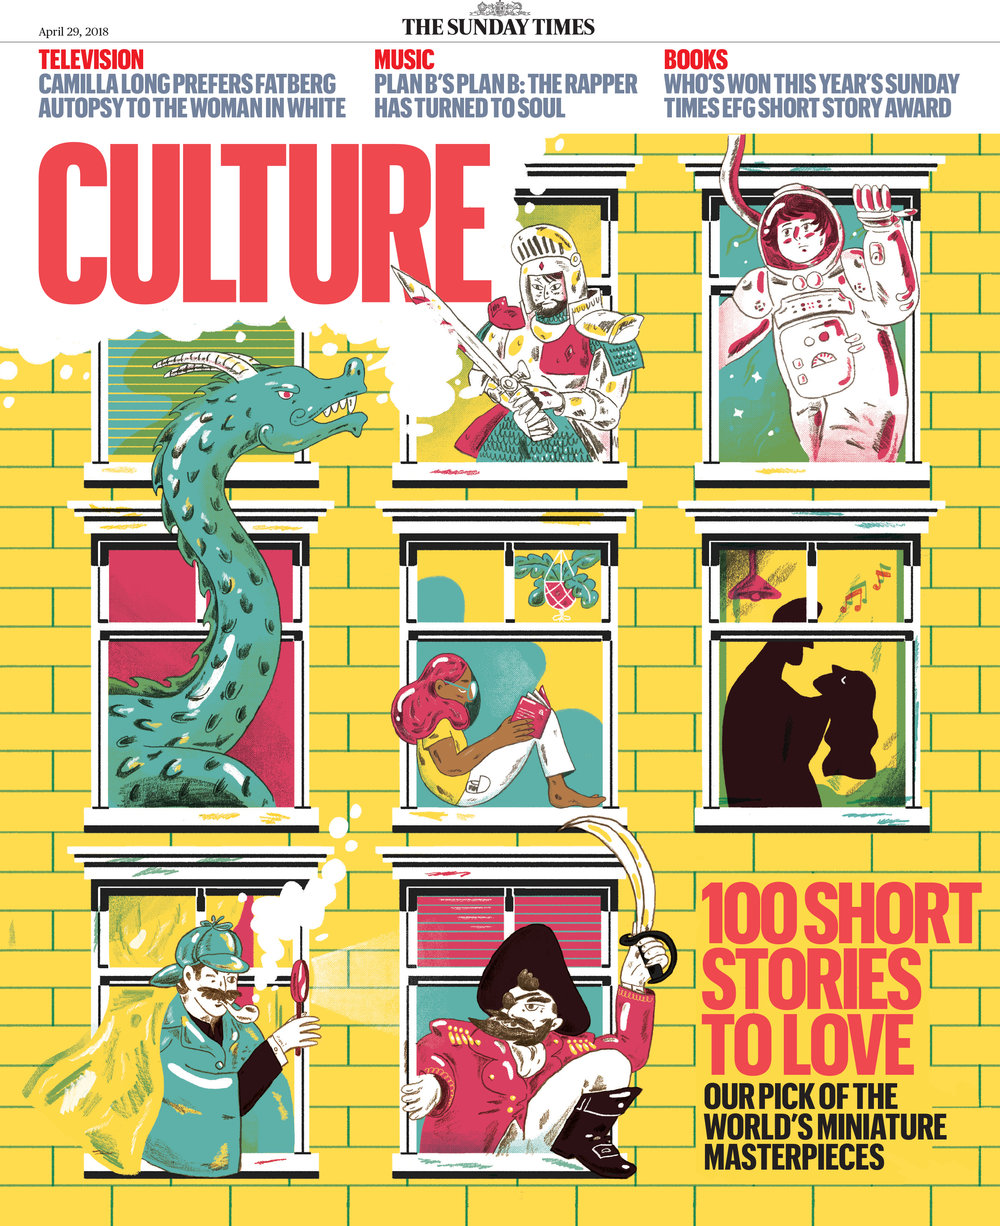 Cover for The Sunday Times Culture Magazine, for a 'Short Stories To Love' feature, 2018.